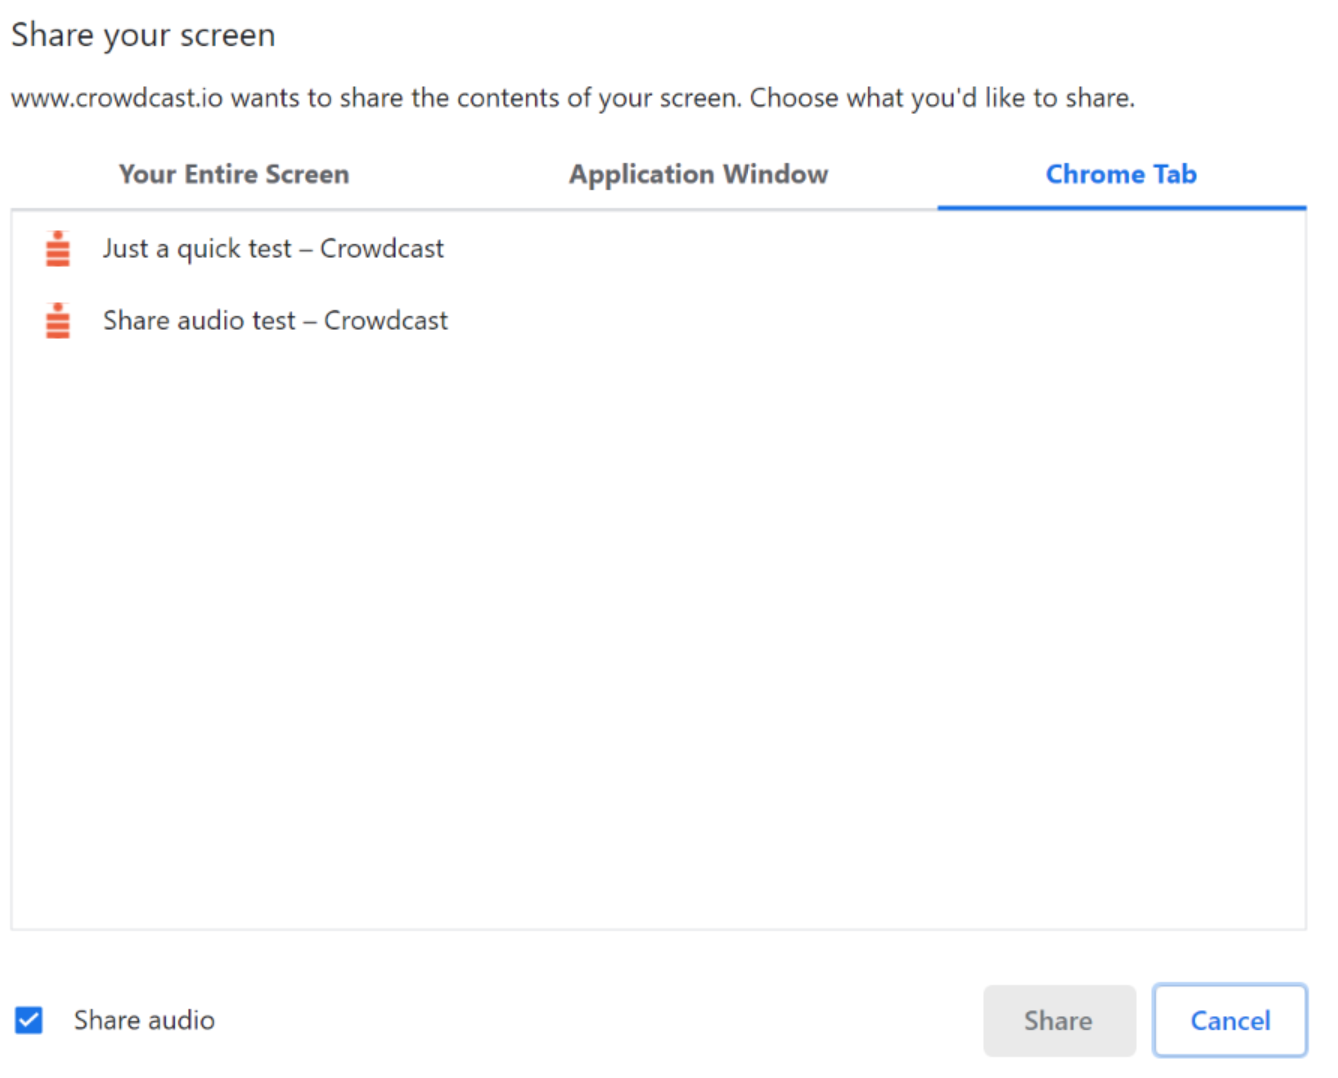 Screenshot of the different screenshare options with Chrome Tab highlighted.